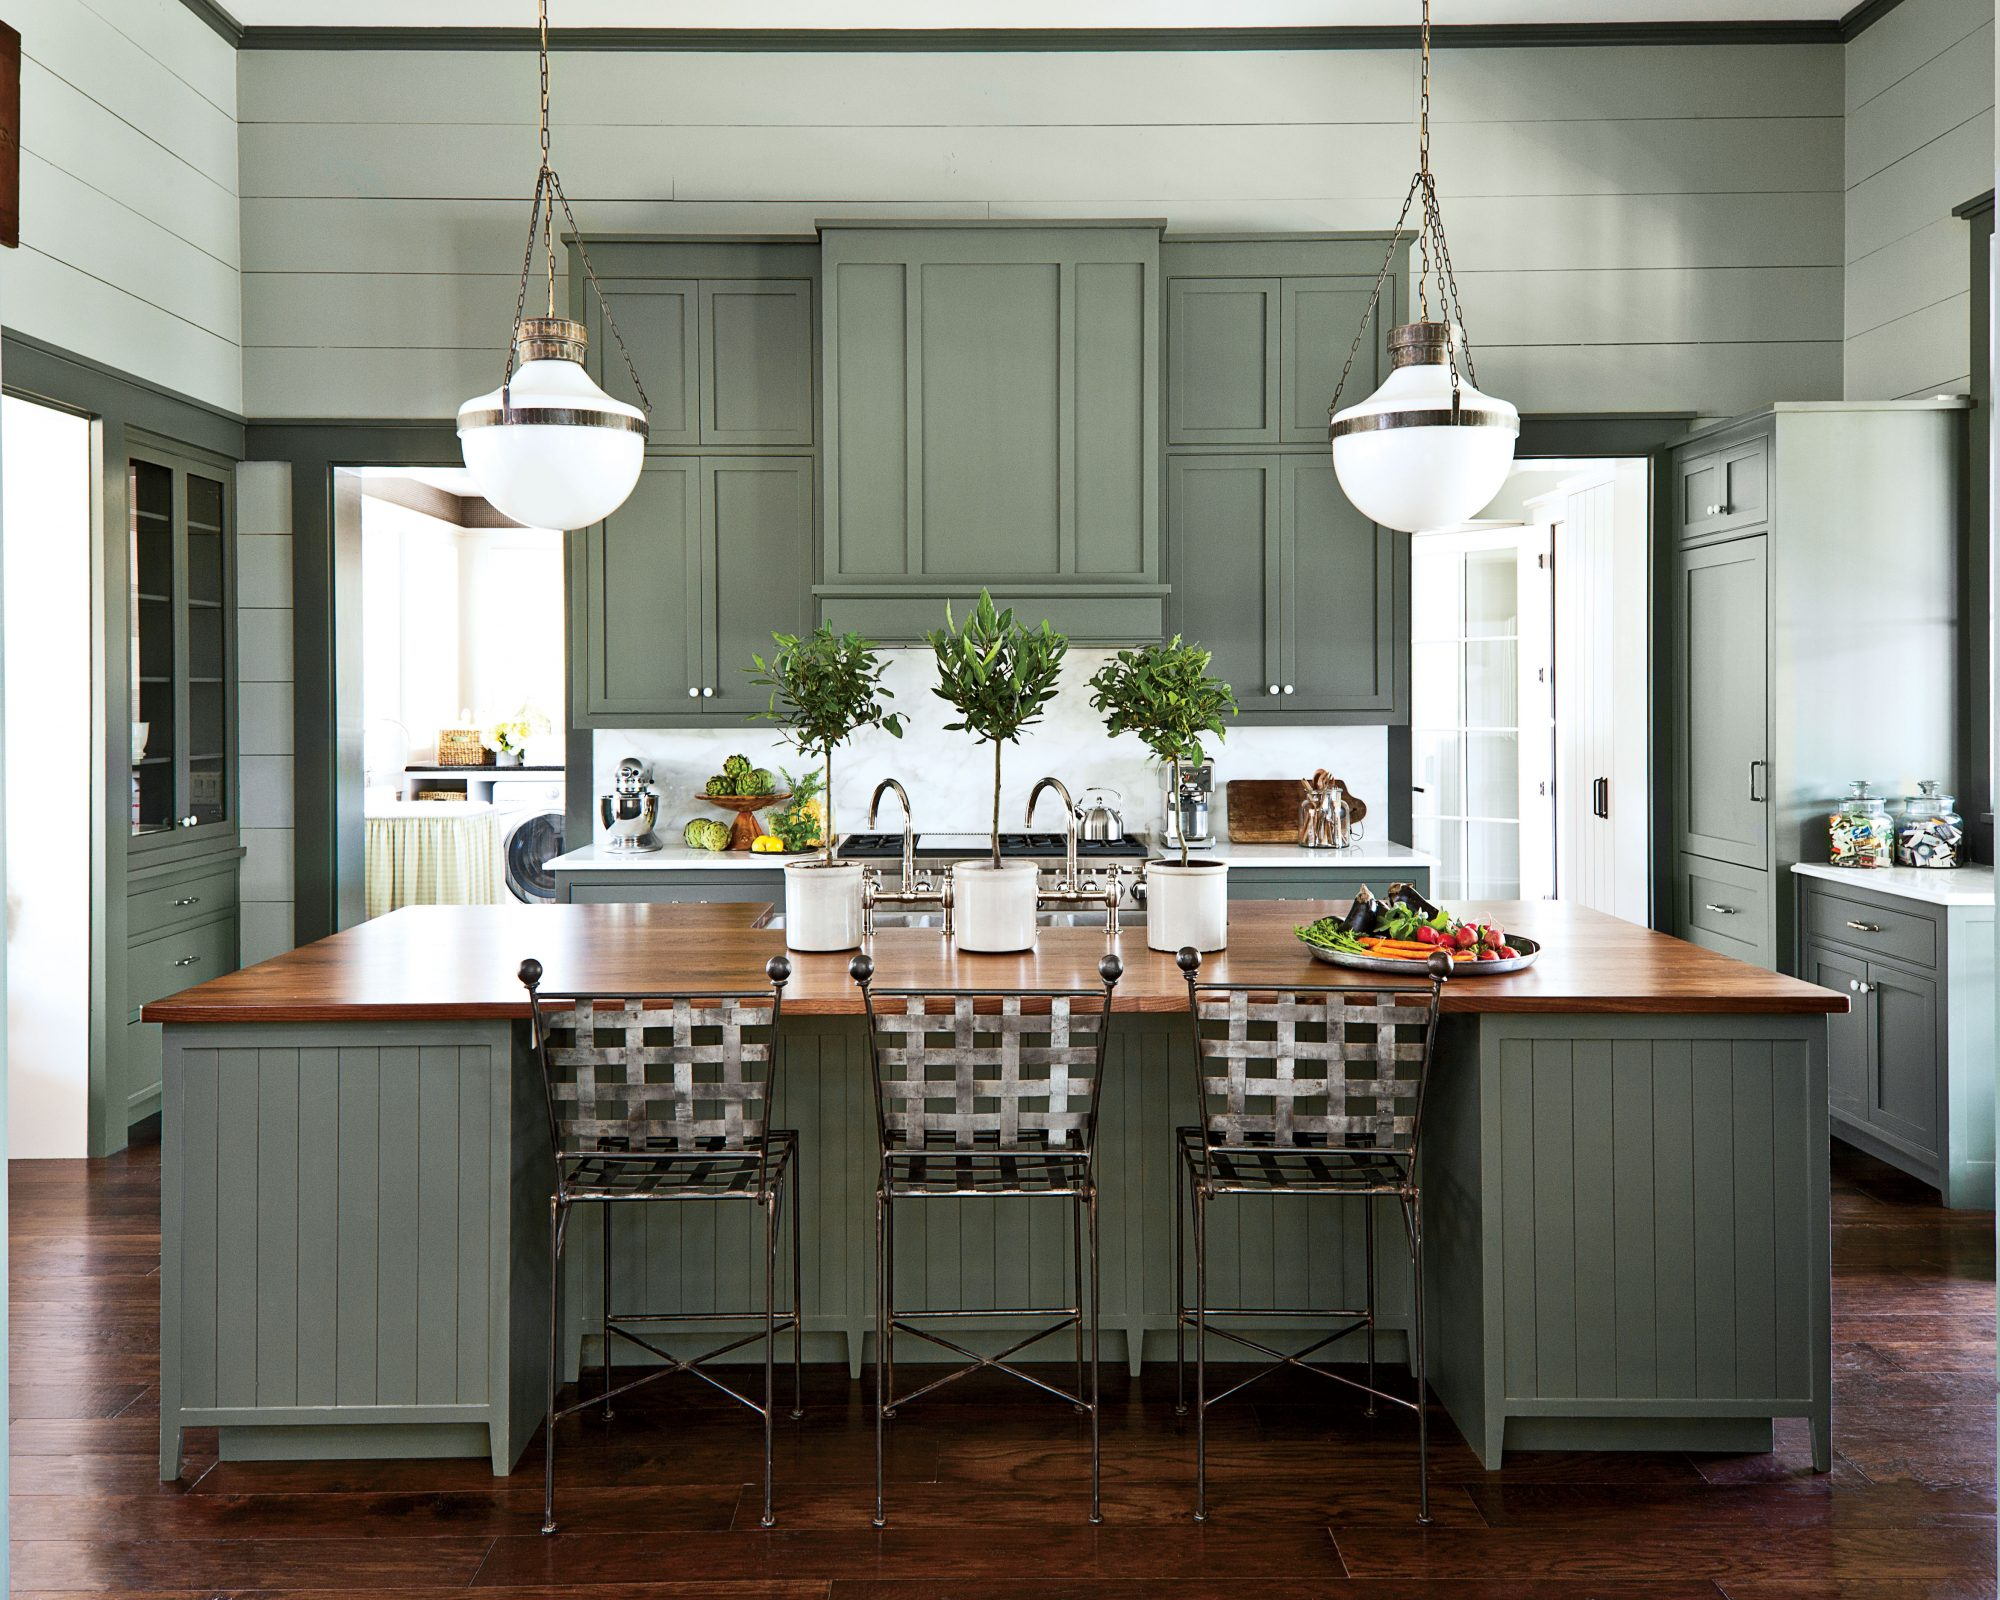 7 Paint Colors Weire Loving For Kitchen Cabinets In 2020 Southern Living